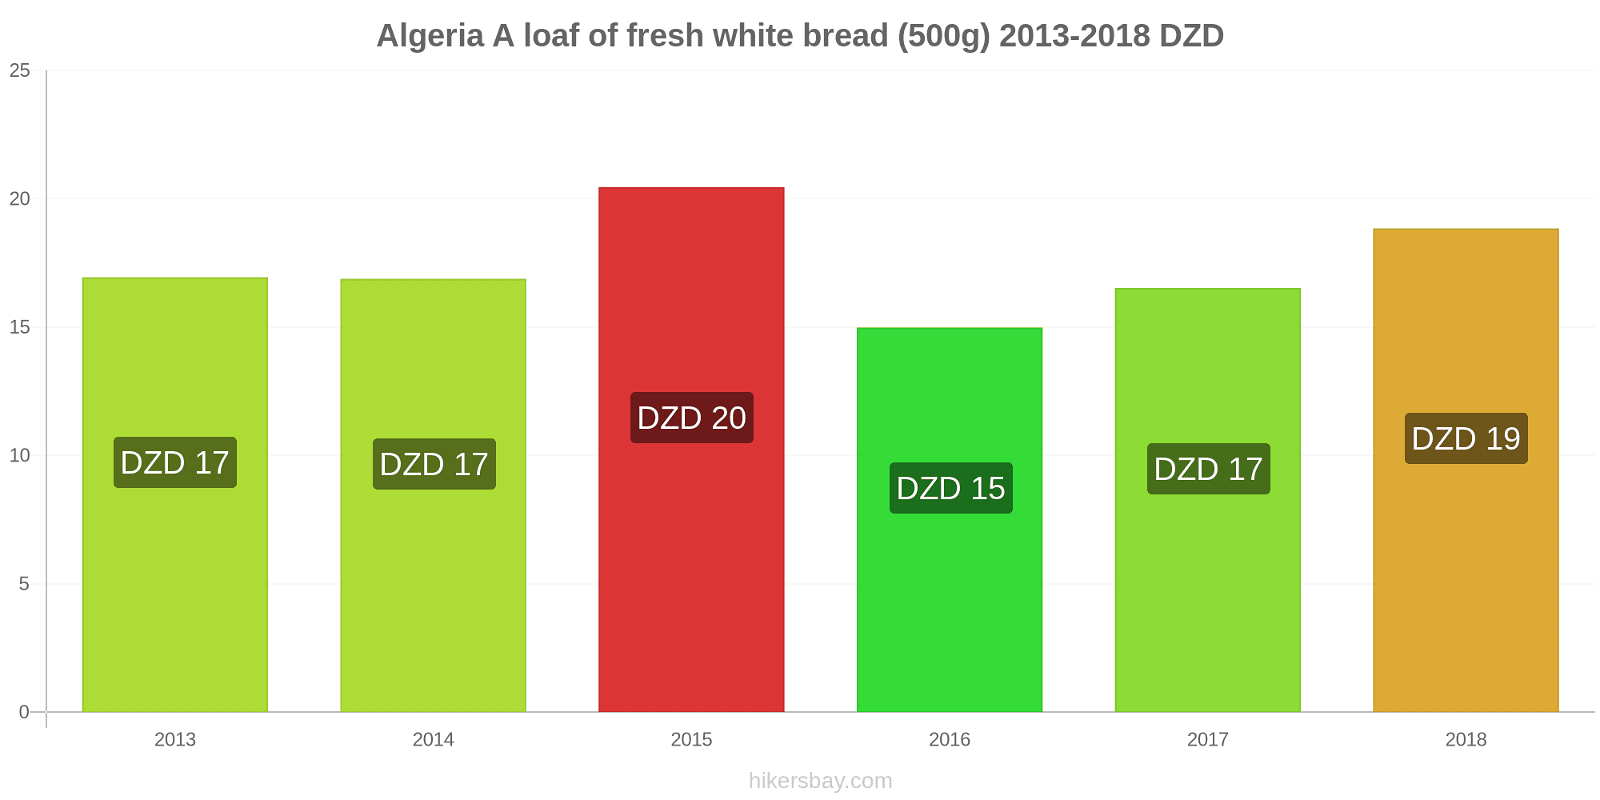 Algeria price changes A loaf of fresh white bread (500g) hikersbay.com